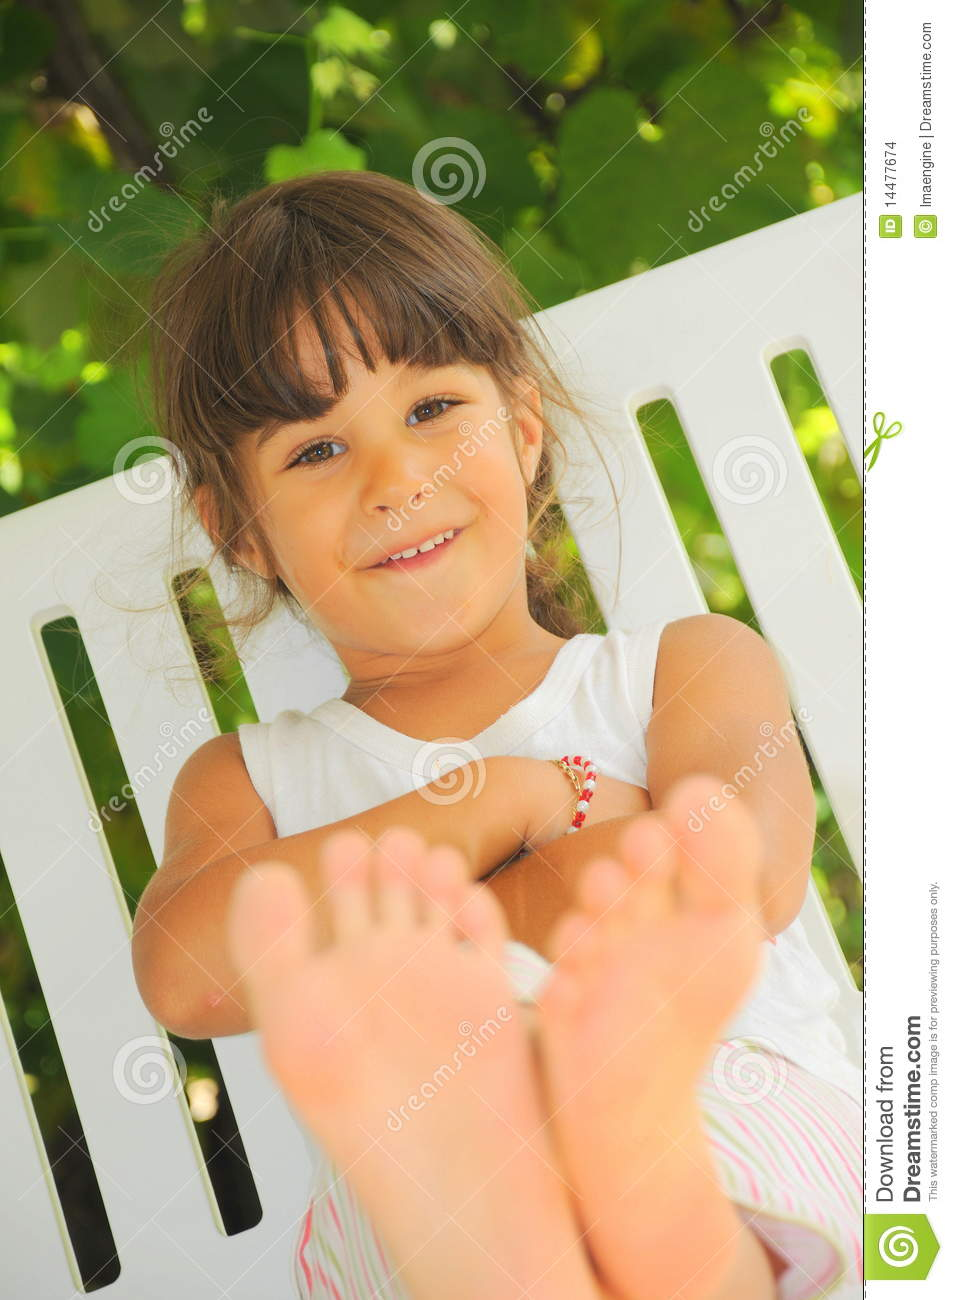 Were visited young girl model feet eventually